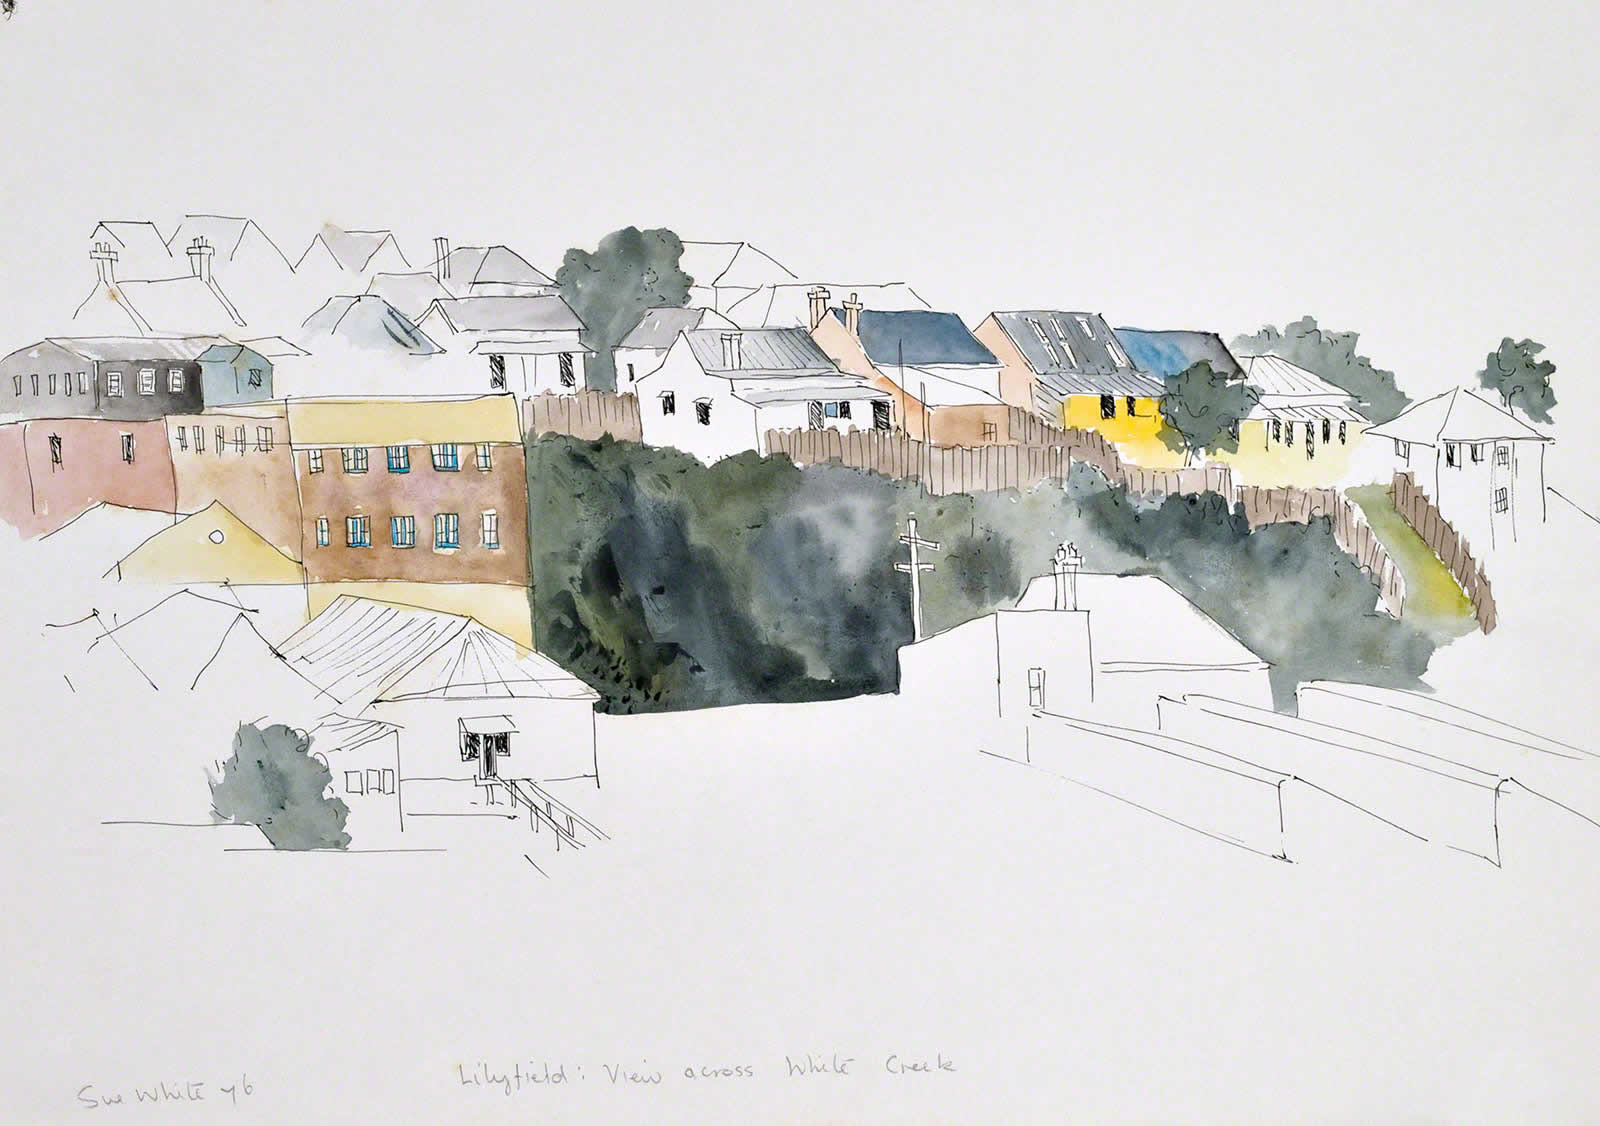 View of Lilyfield from Annandale, across White's Creek by Susan Dorothea White